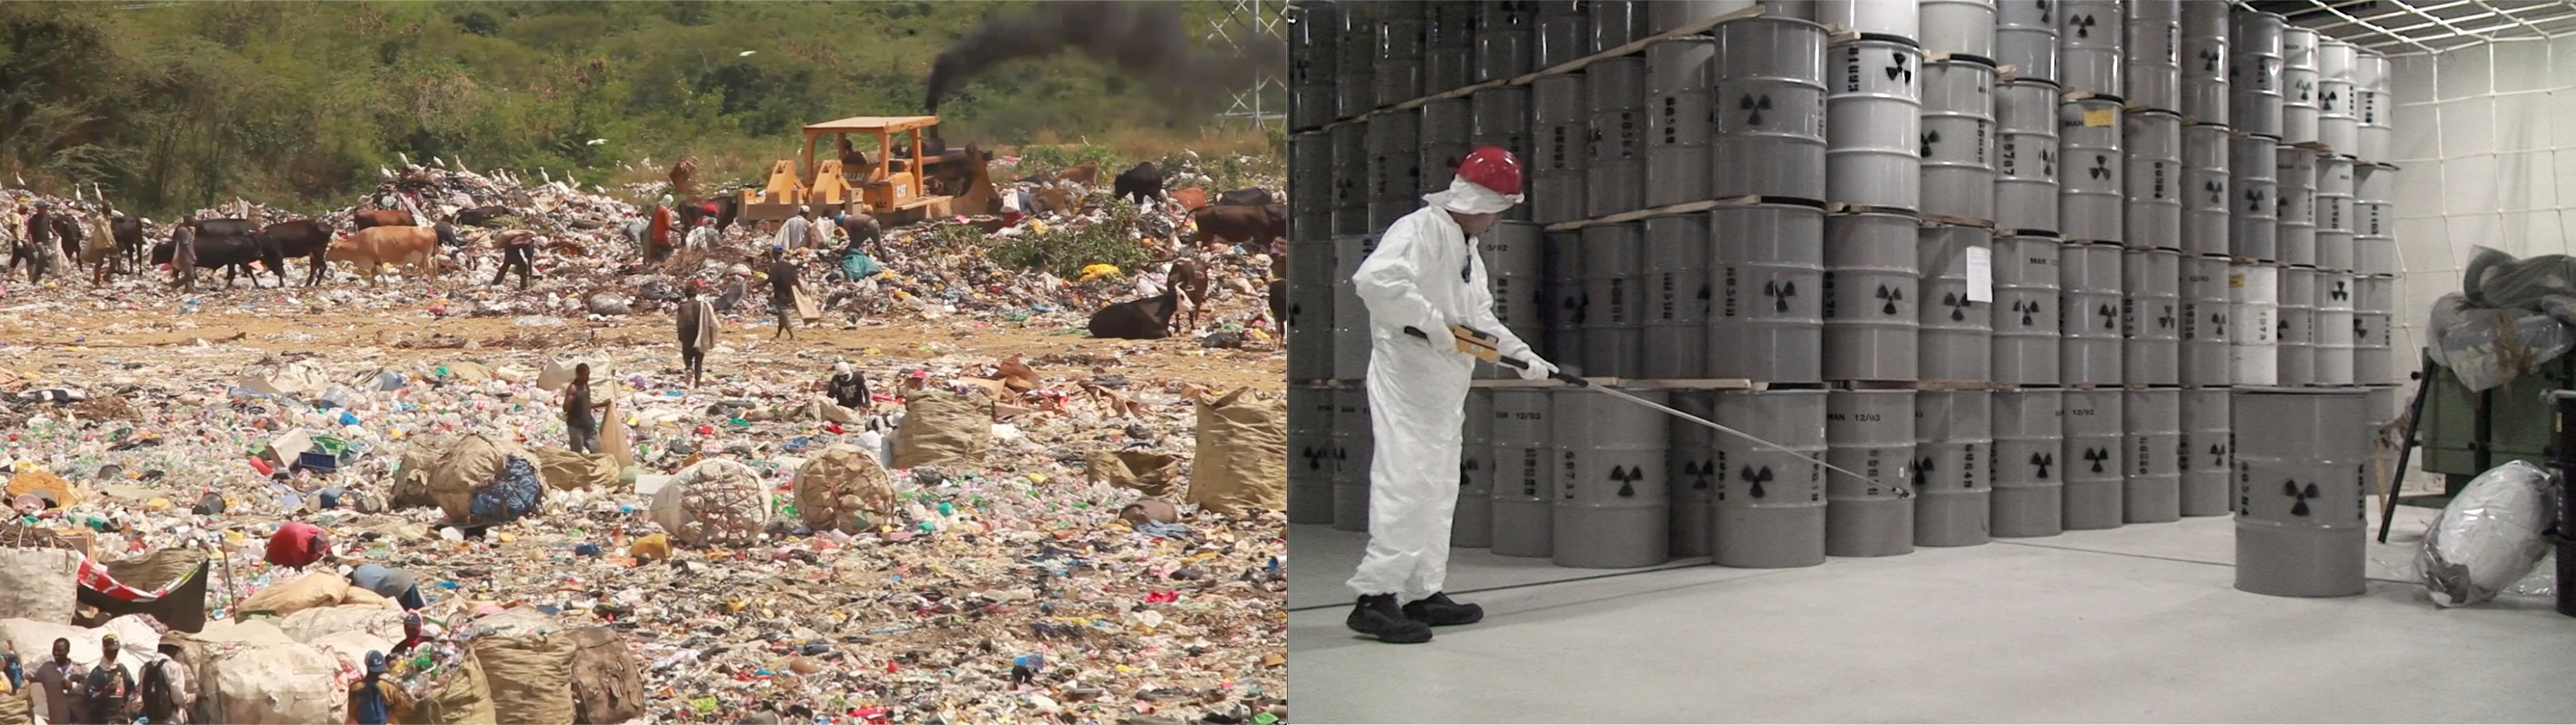 Two adjacent images, left: video still from video by Isabelle Carbonell and Duane Peterson showing a tip and recyclers. Right: still from video by Armin Linke showing a nuclear waste storage facility